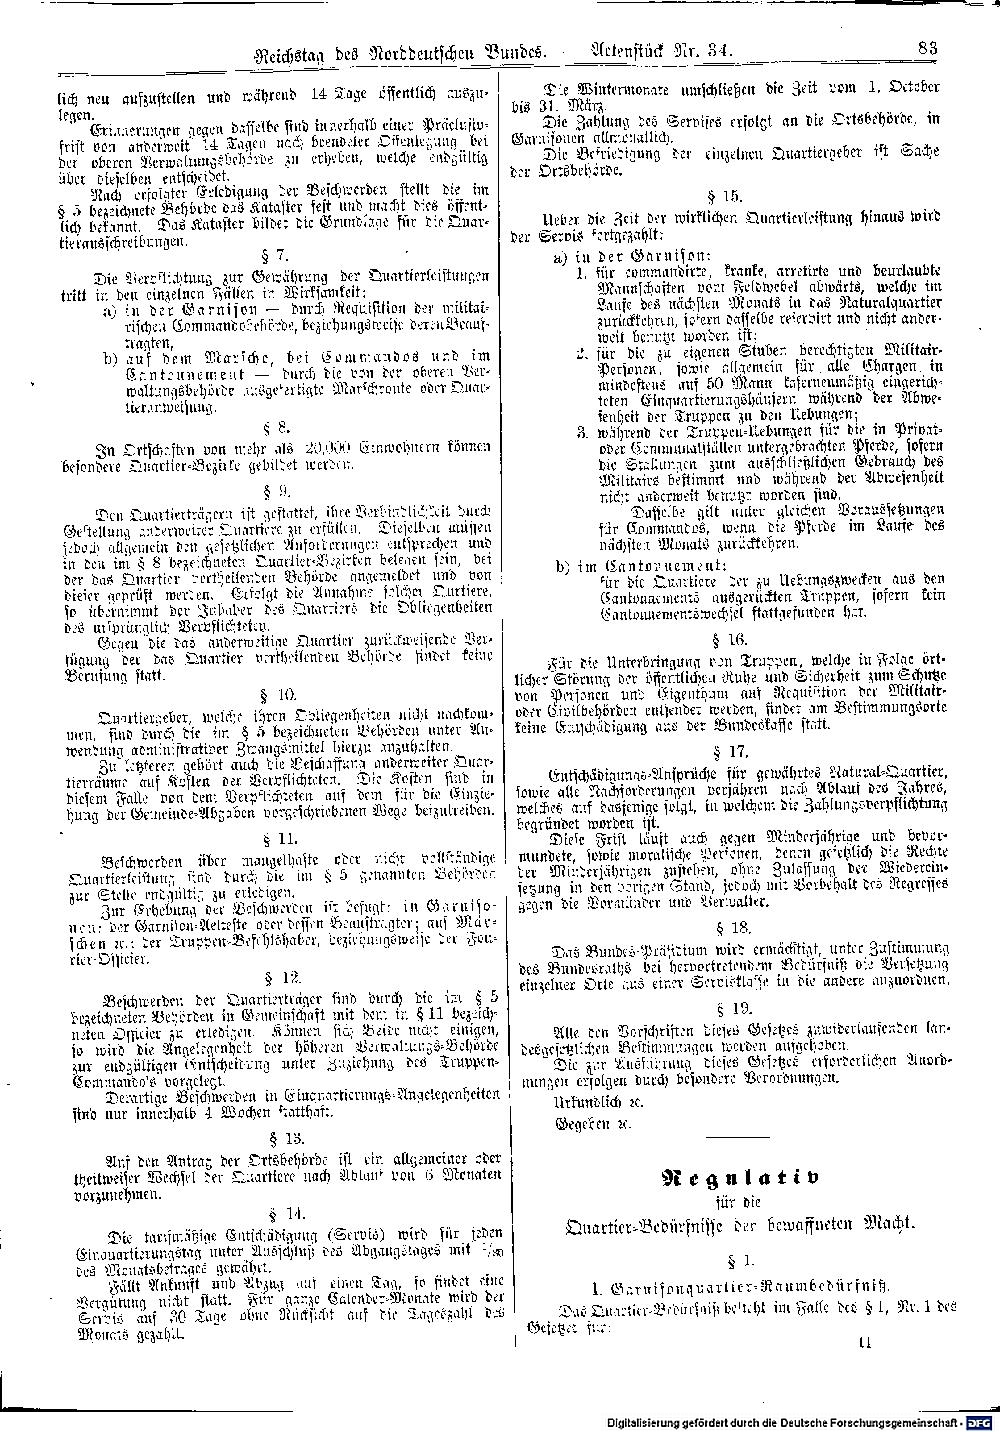 Scan of page 83